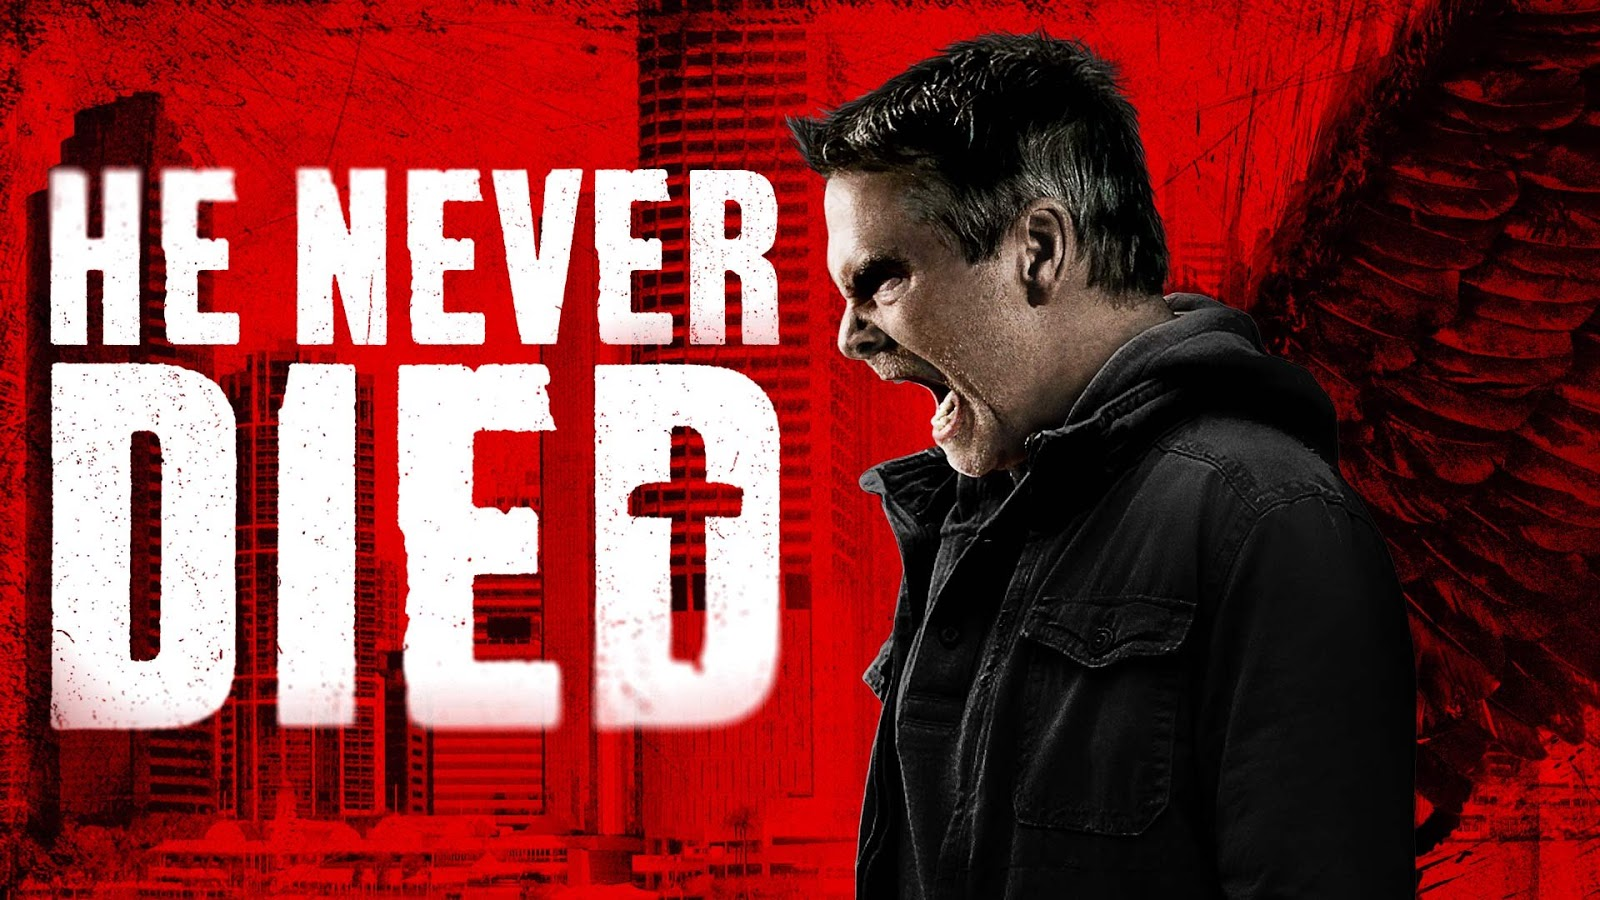 He Never Died (2015) – An Amusing Horror Film